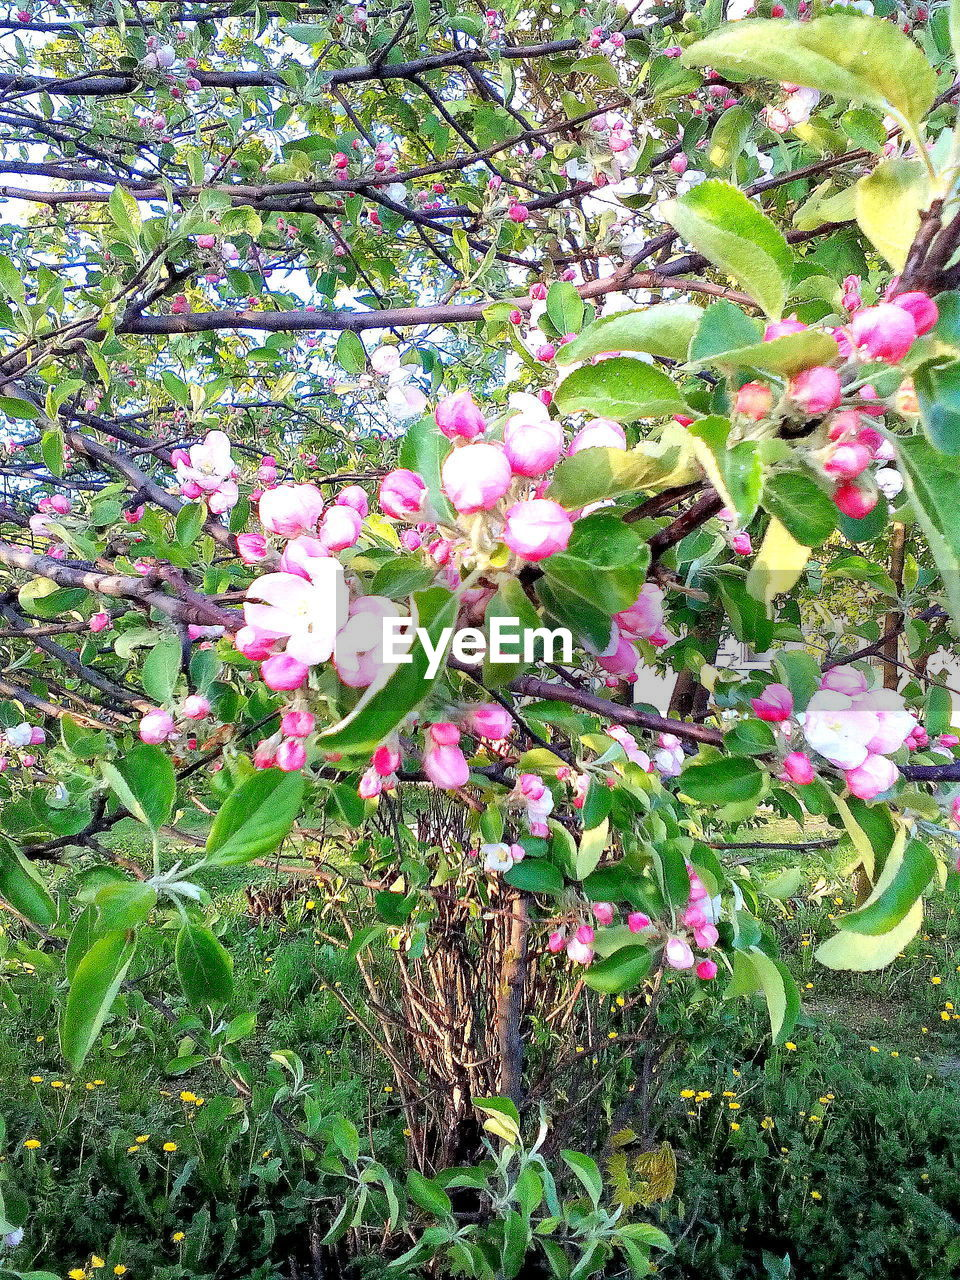 flower, growth, beauty in nature, fragility, nature, pink color, freshness, no people, plant, blossom, day, petal, leaf, springtime, green color, outdoors, blooming, branch, tree, flower head, grass, close-up